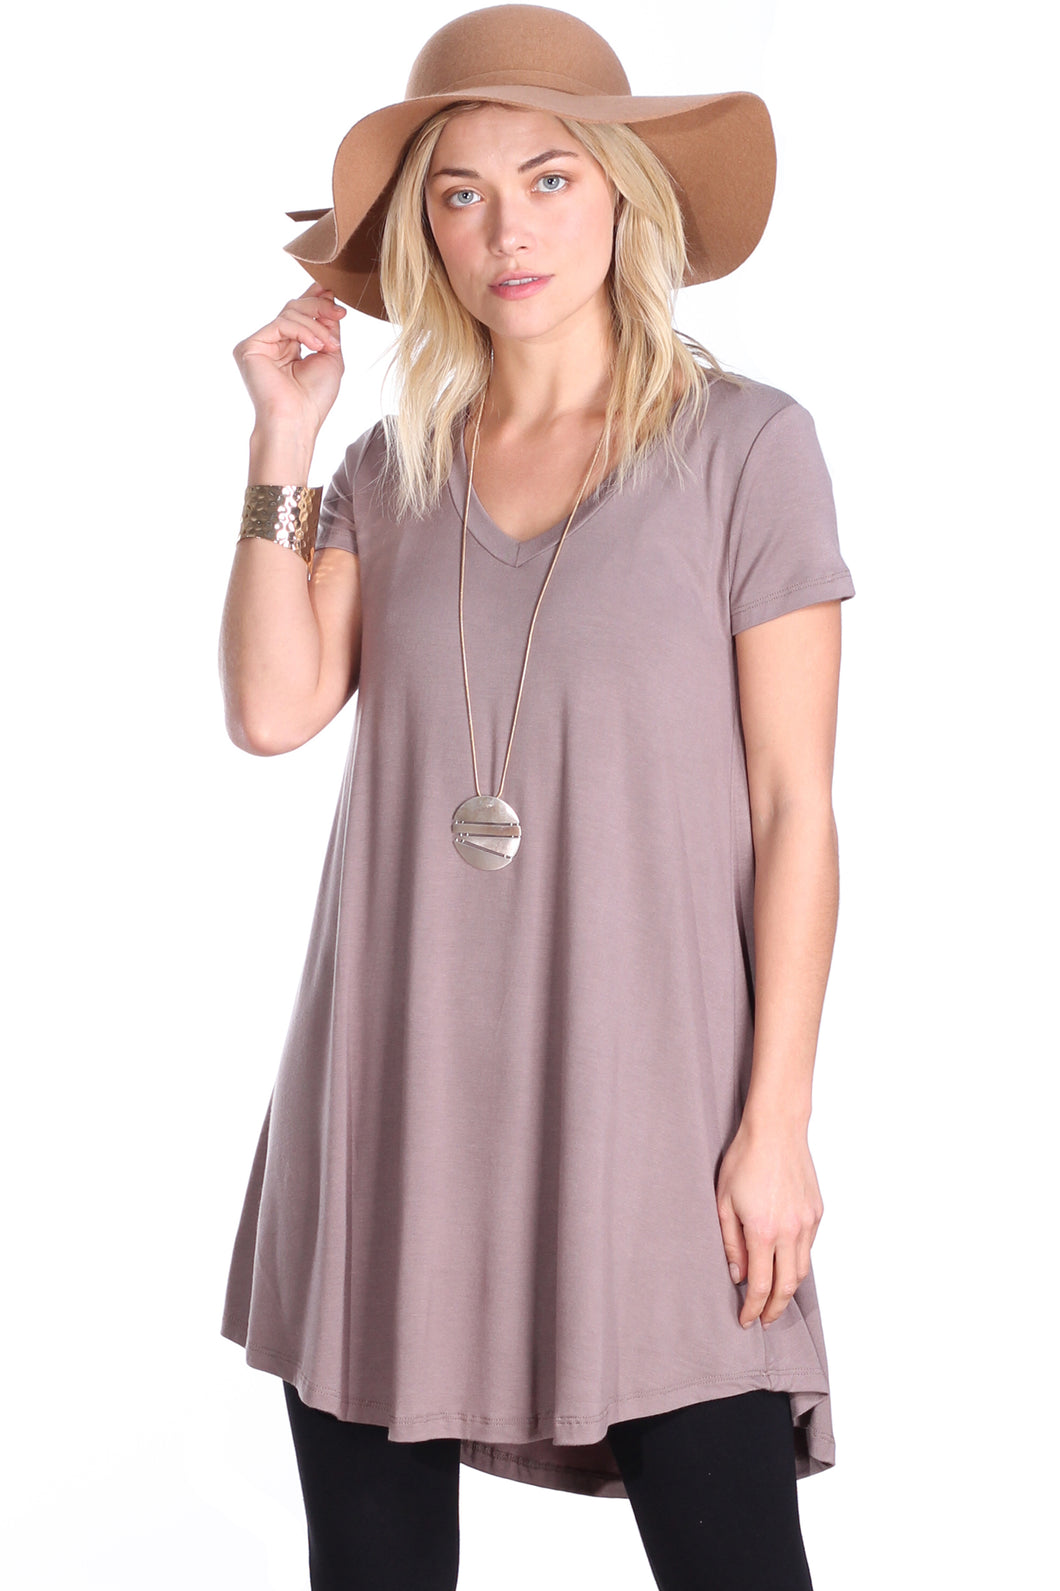 Toffee Short Sleeve Tunic Top